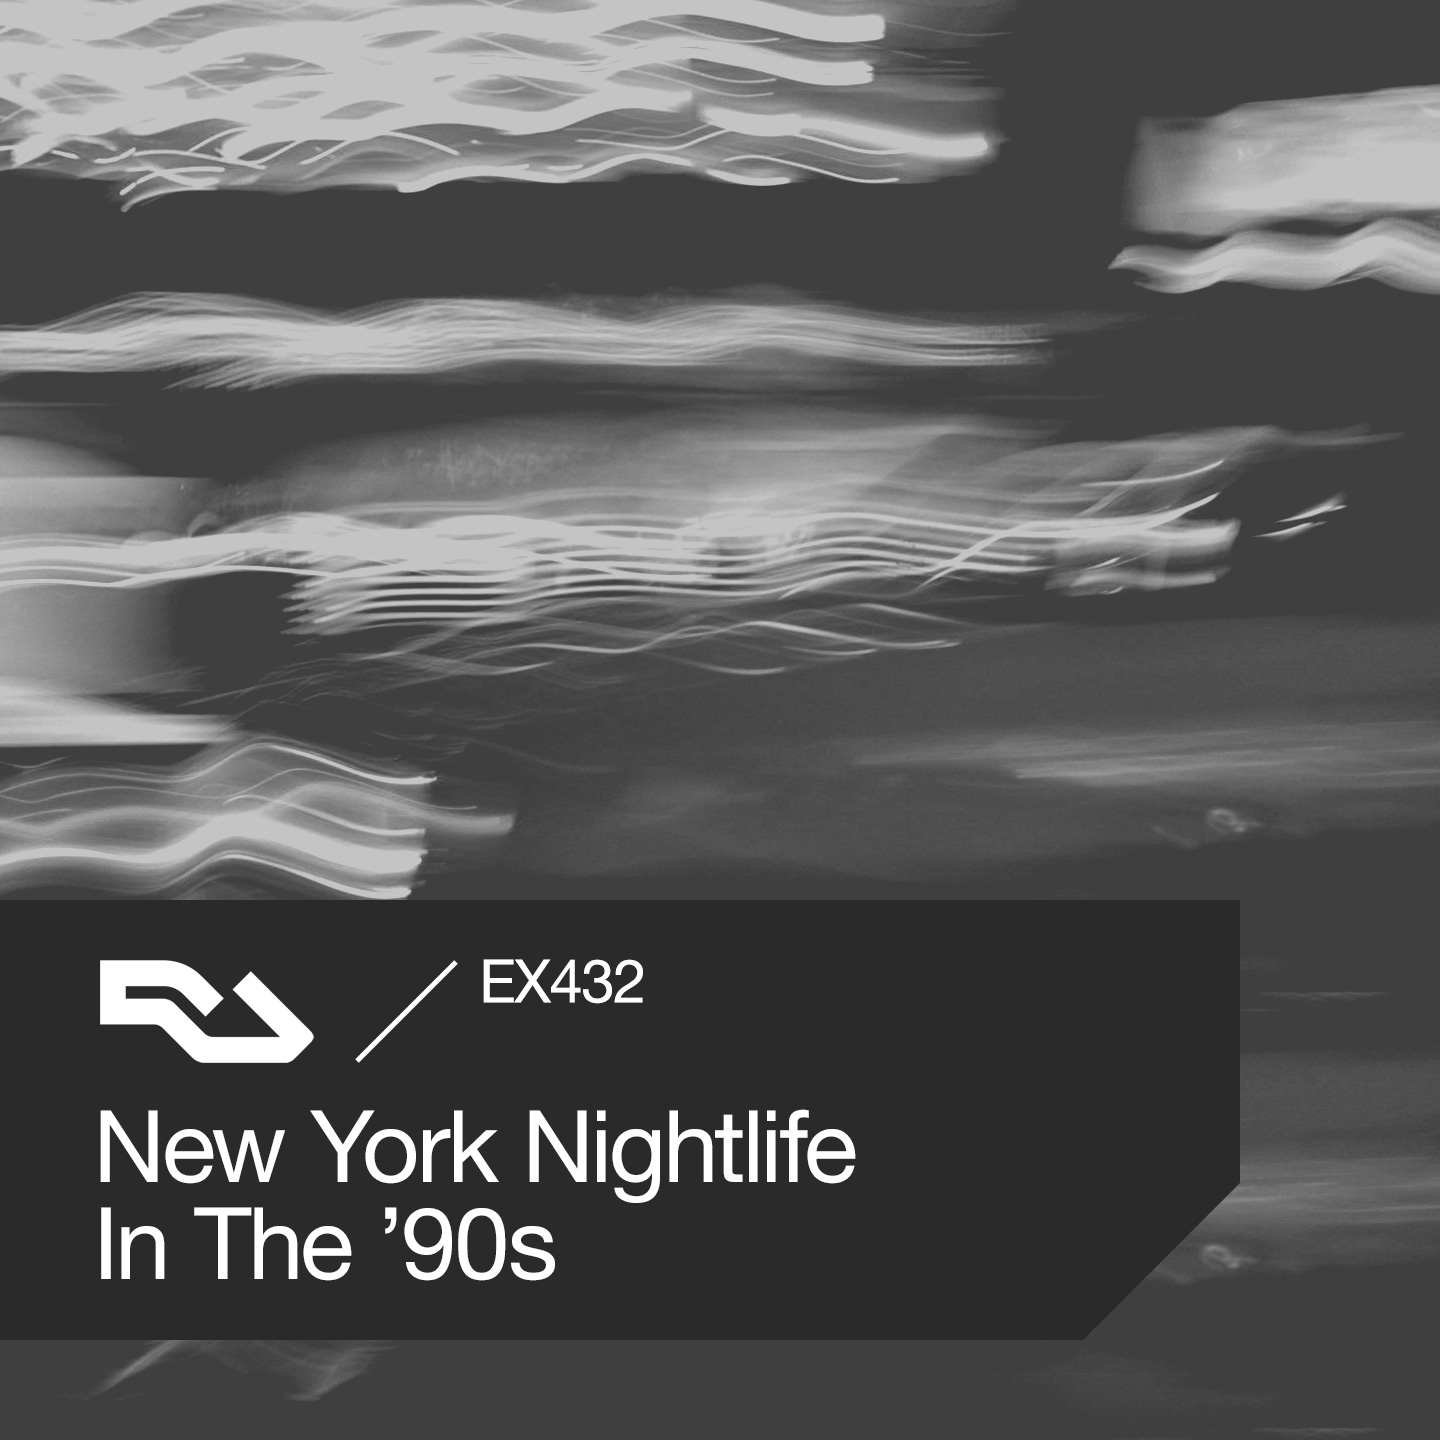 EX.432 New York Nightlife In The '90s